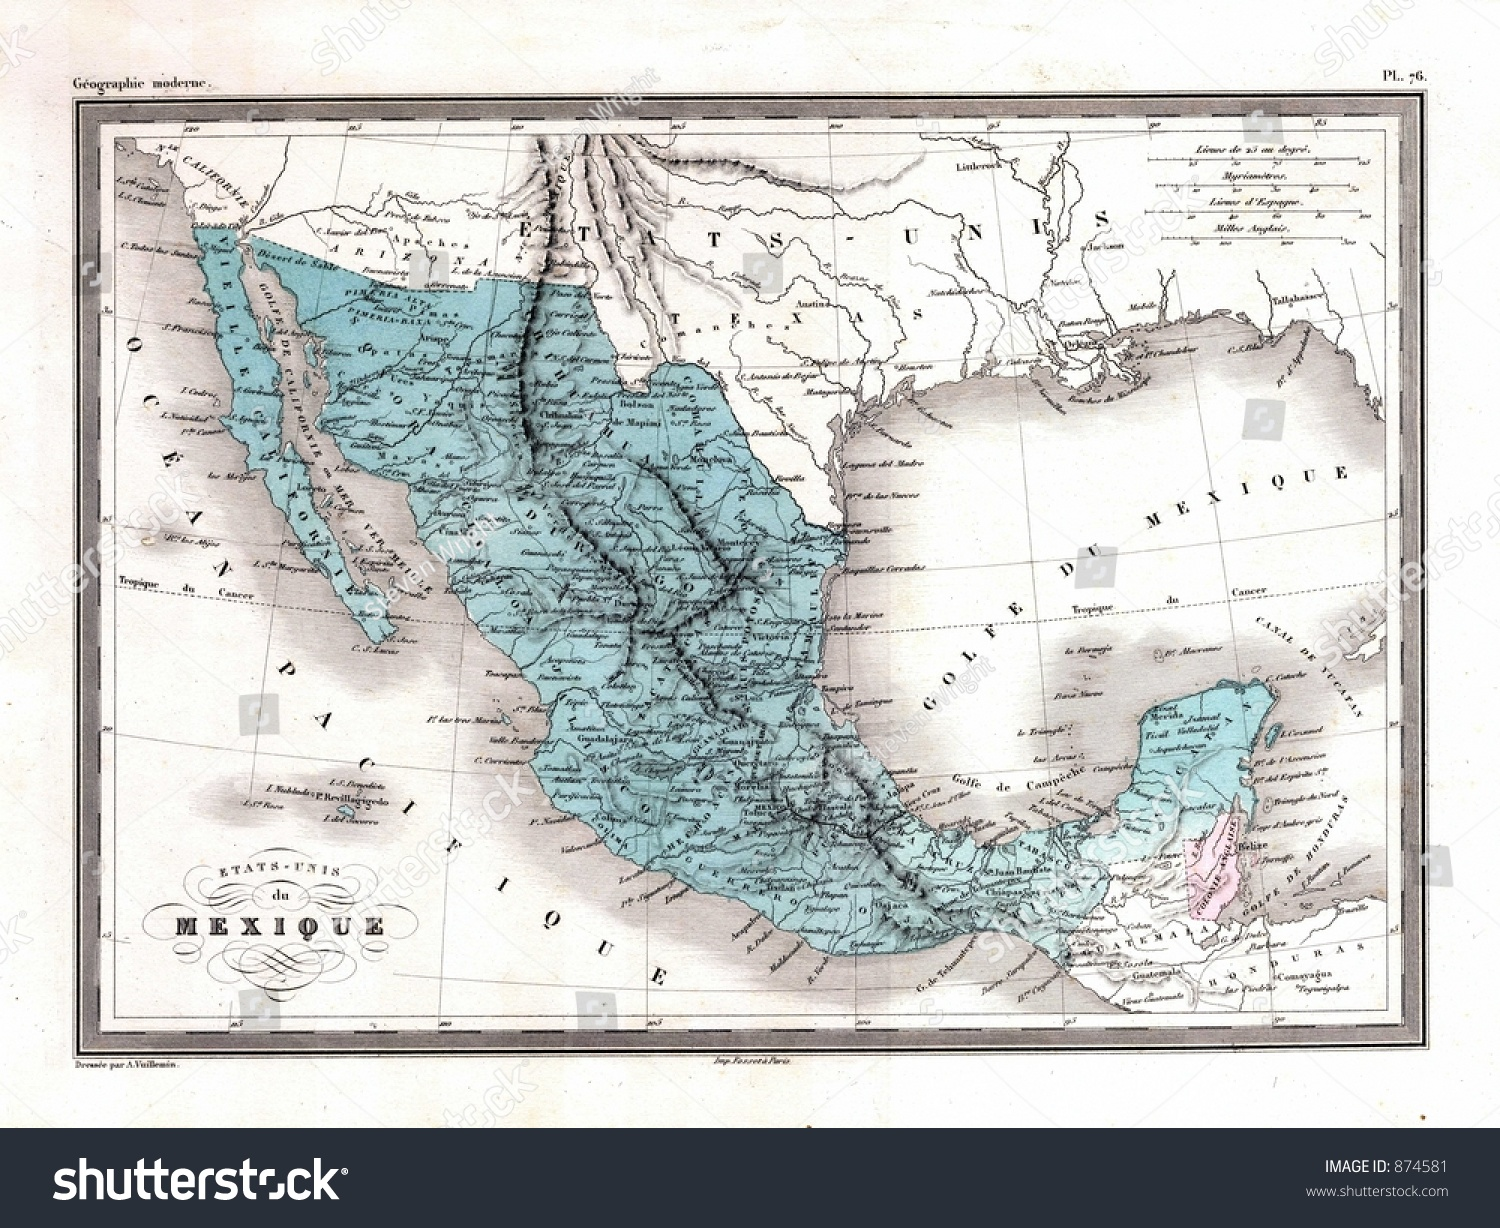 antique 1870 map mexico stock illustration 874581 shutterstock